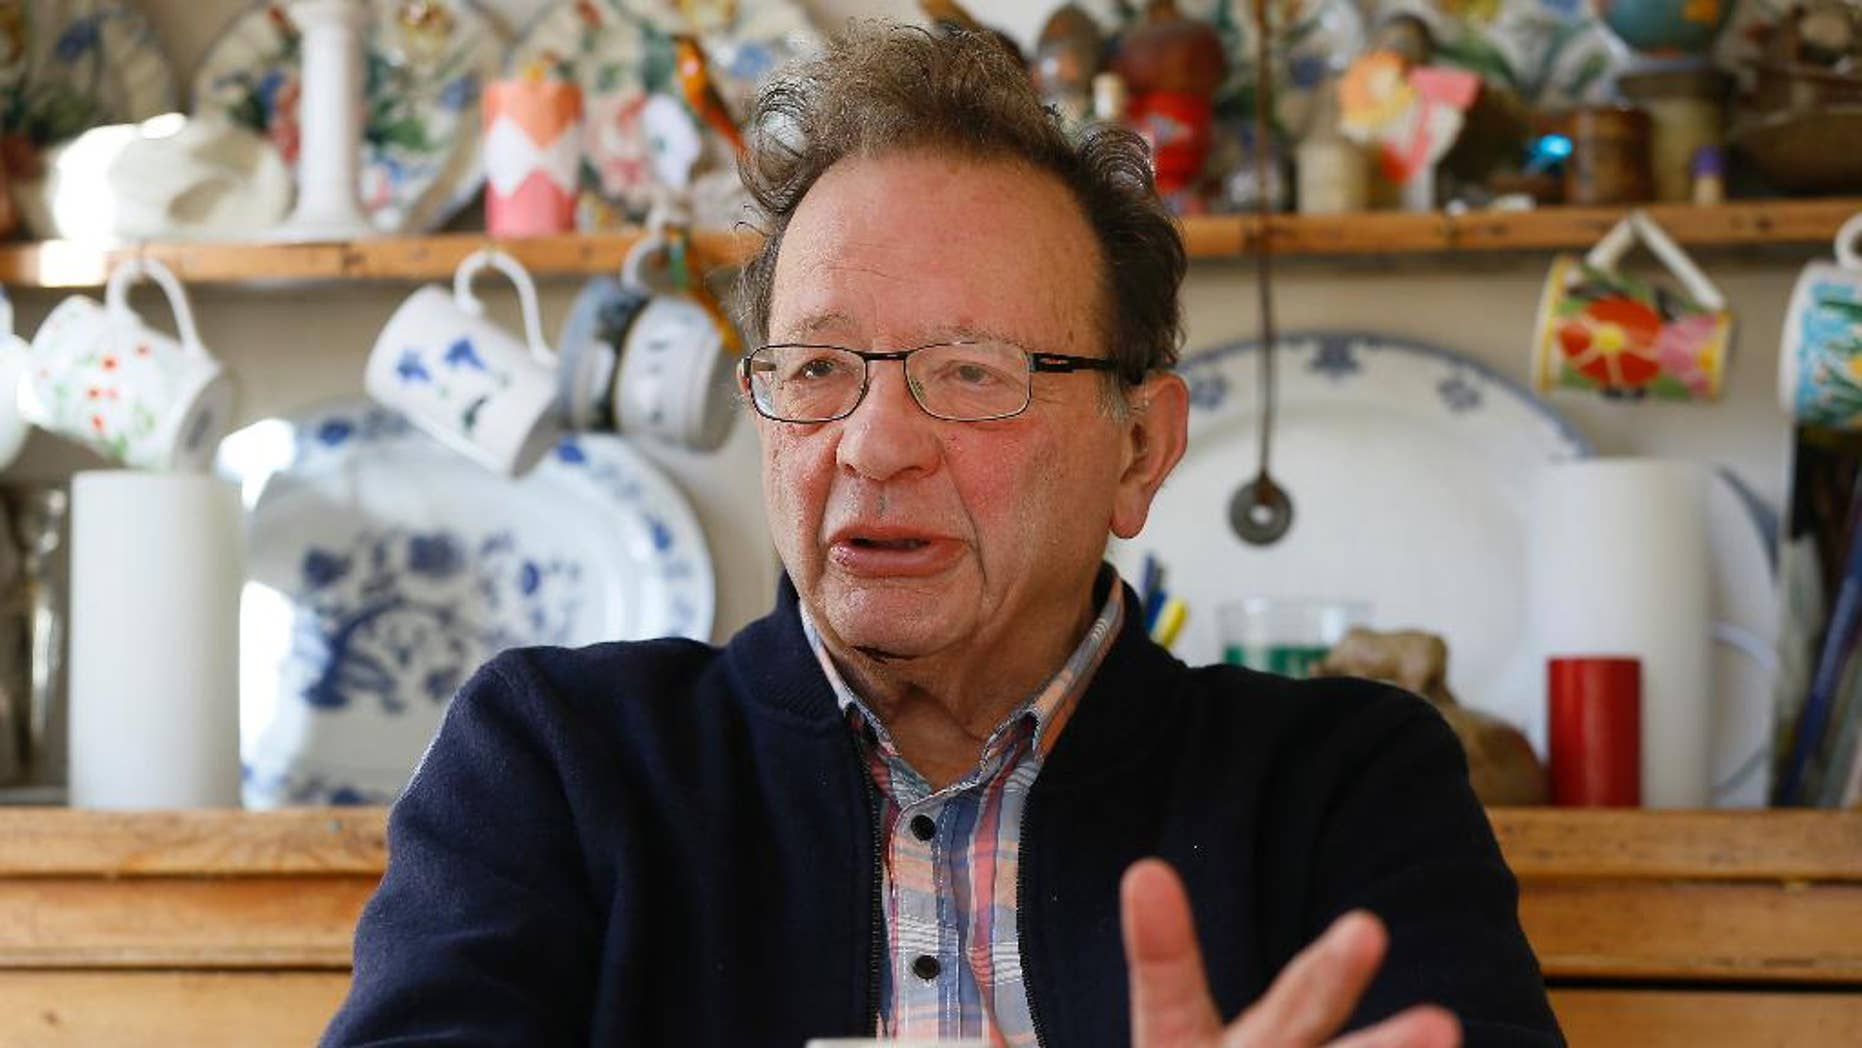 "FILE - In this Feb. 15, 2016 file photo, Larry Sanders, the brother of former U.S. presidential candidate Bernie Sanders, sits at home in his kitchen in Oxford, England. Bernie Sanders said on Tuesday, Oct. 11, 2016, that he doesn't know ""a heck of a lot"" about British politics but that hasn't stopped him from endorsing his brother Larry Sanders' bid for a seat in Parliament. (AP Photo/Kirsty Wigglesworth, File)"